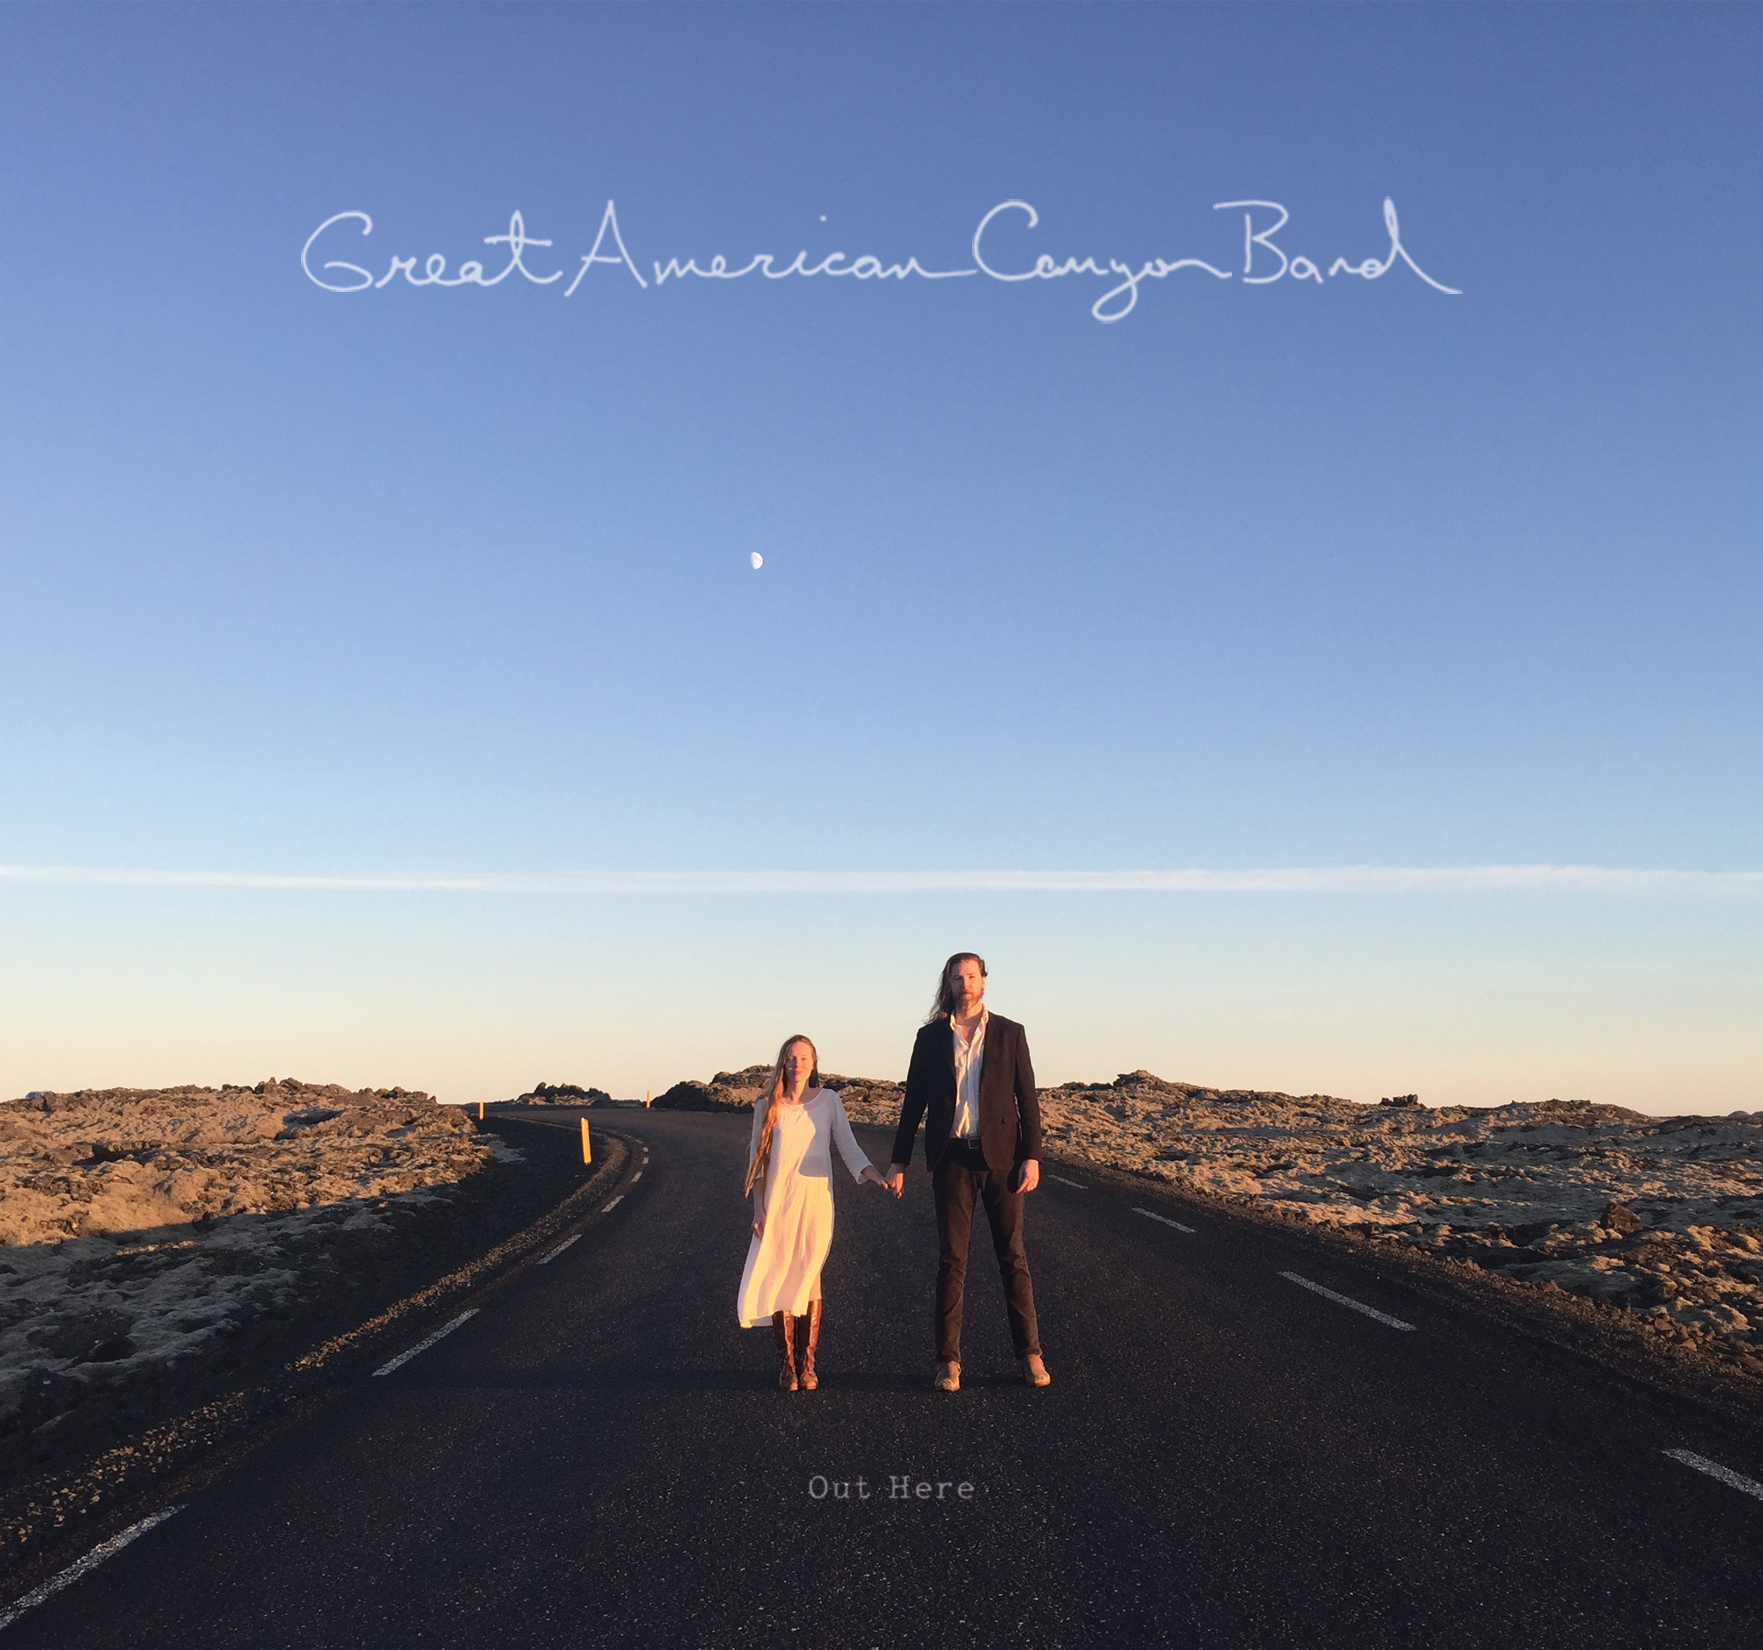 Great American Canyon Band – Out Here EP